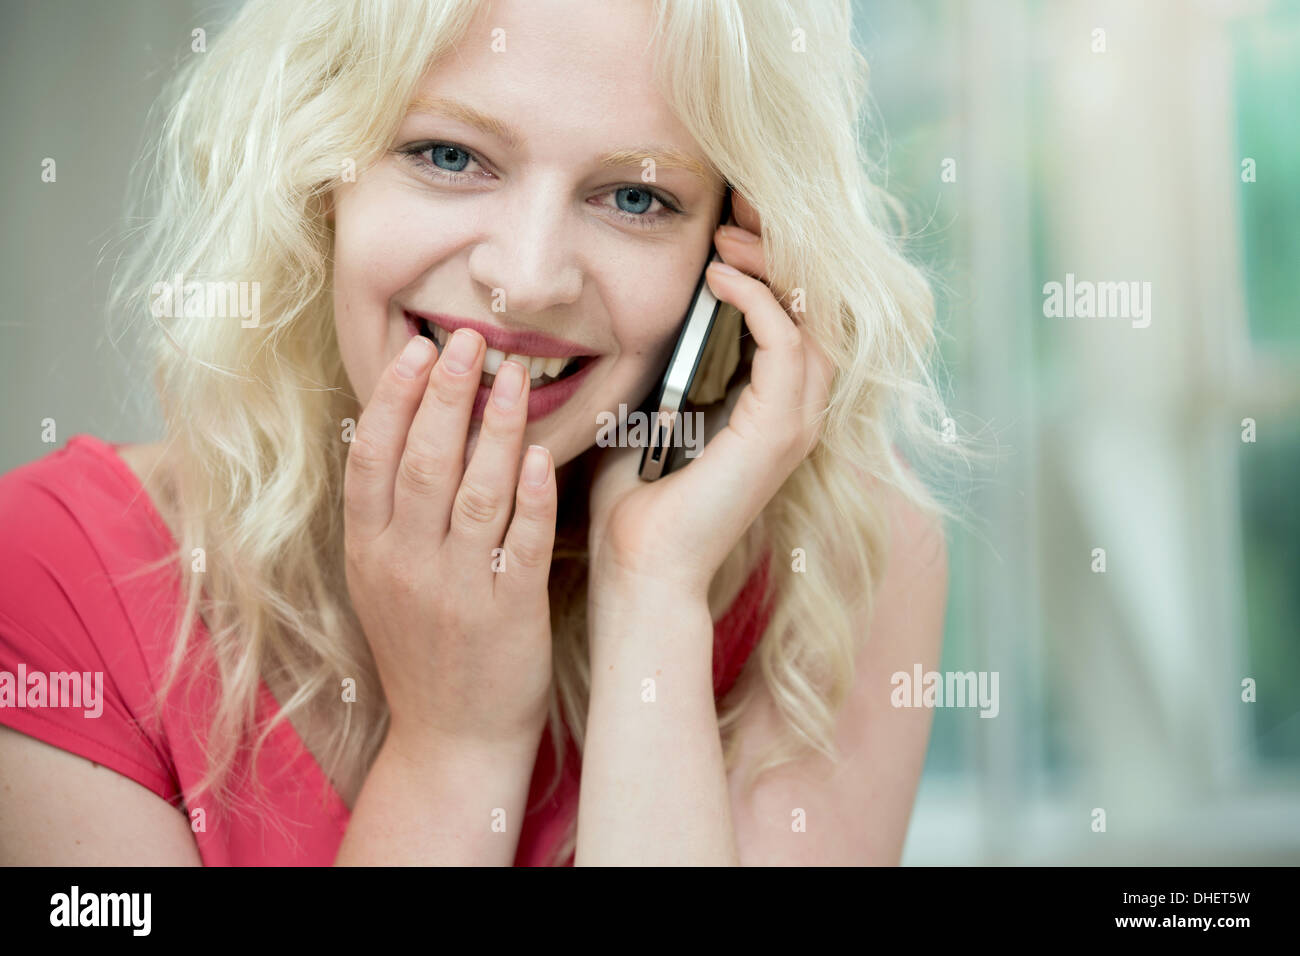 Young woman on cellphone, giggling - Stock Image